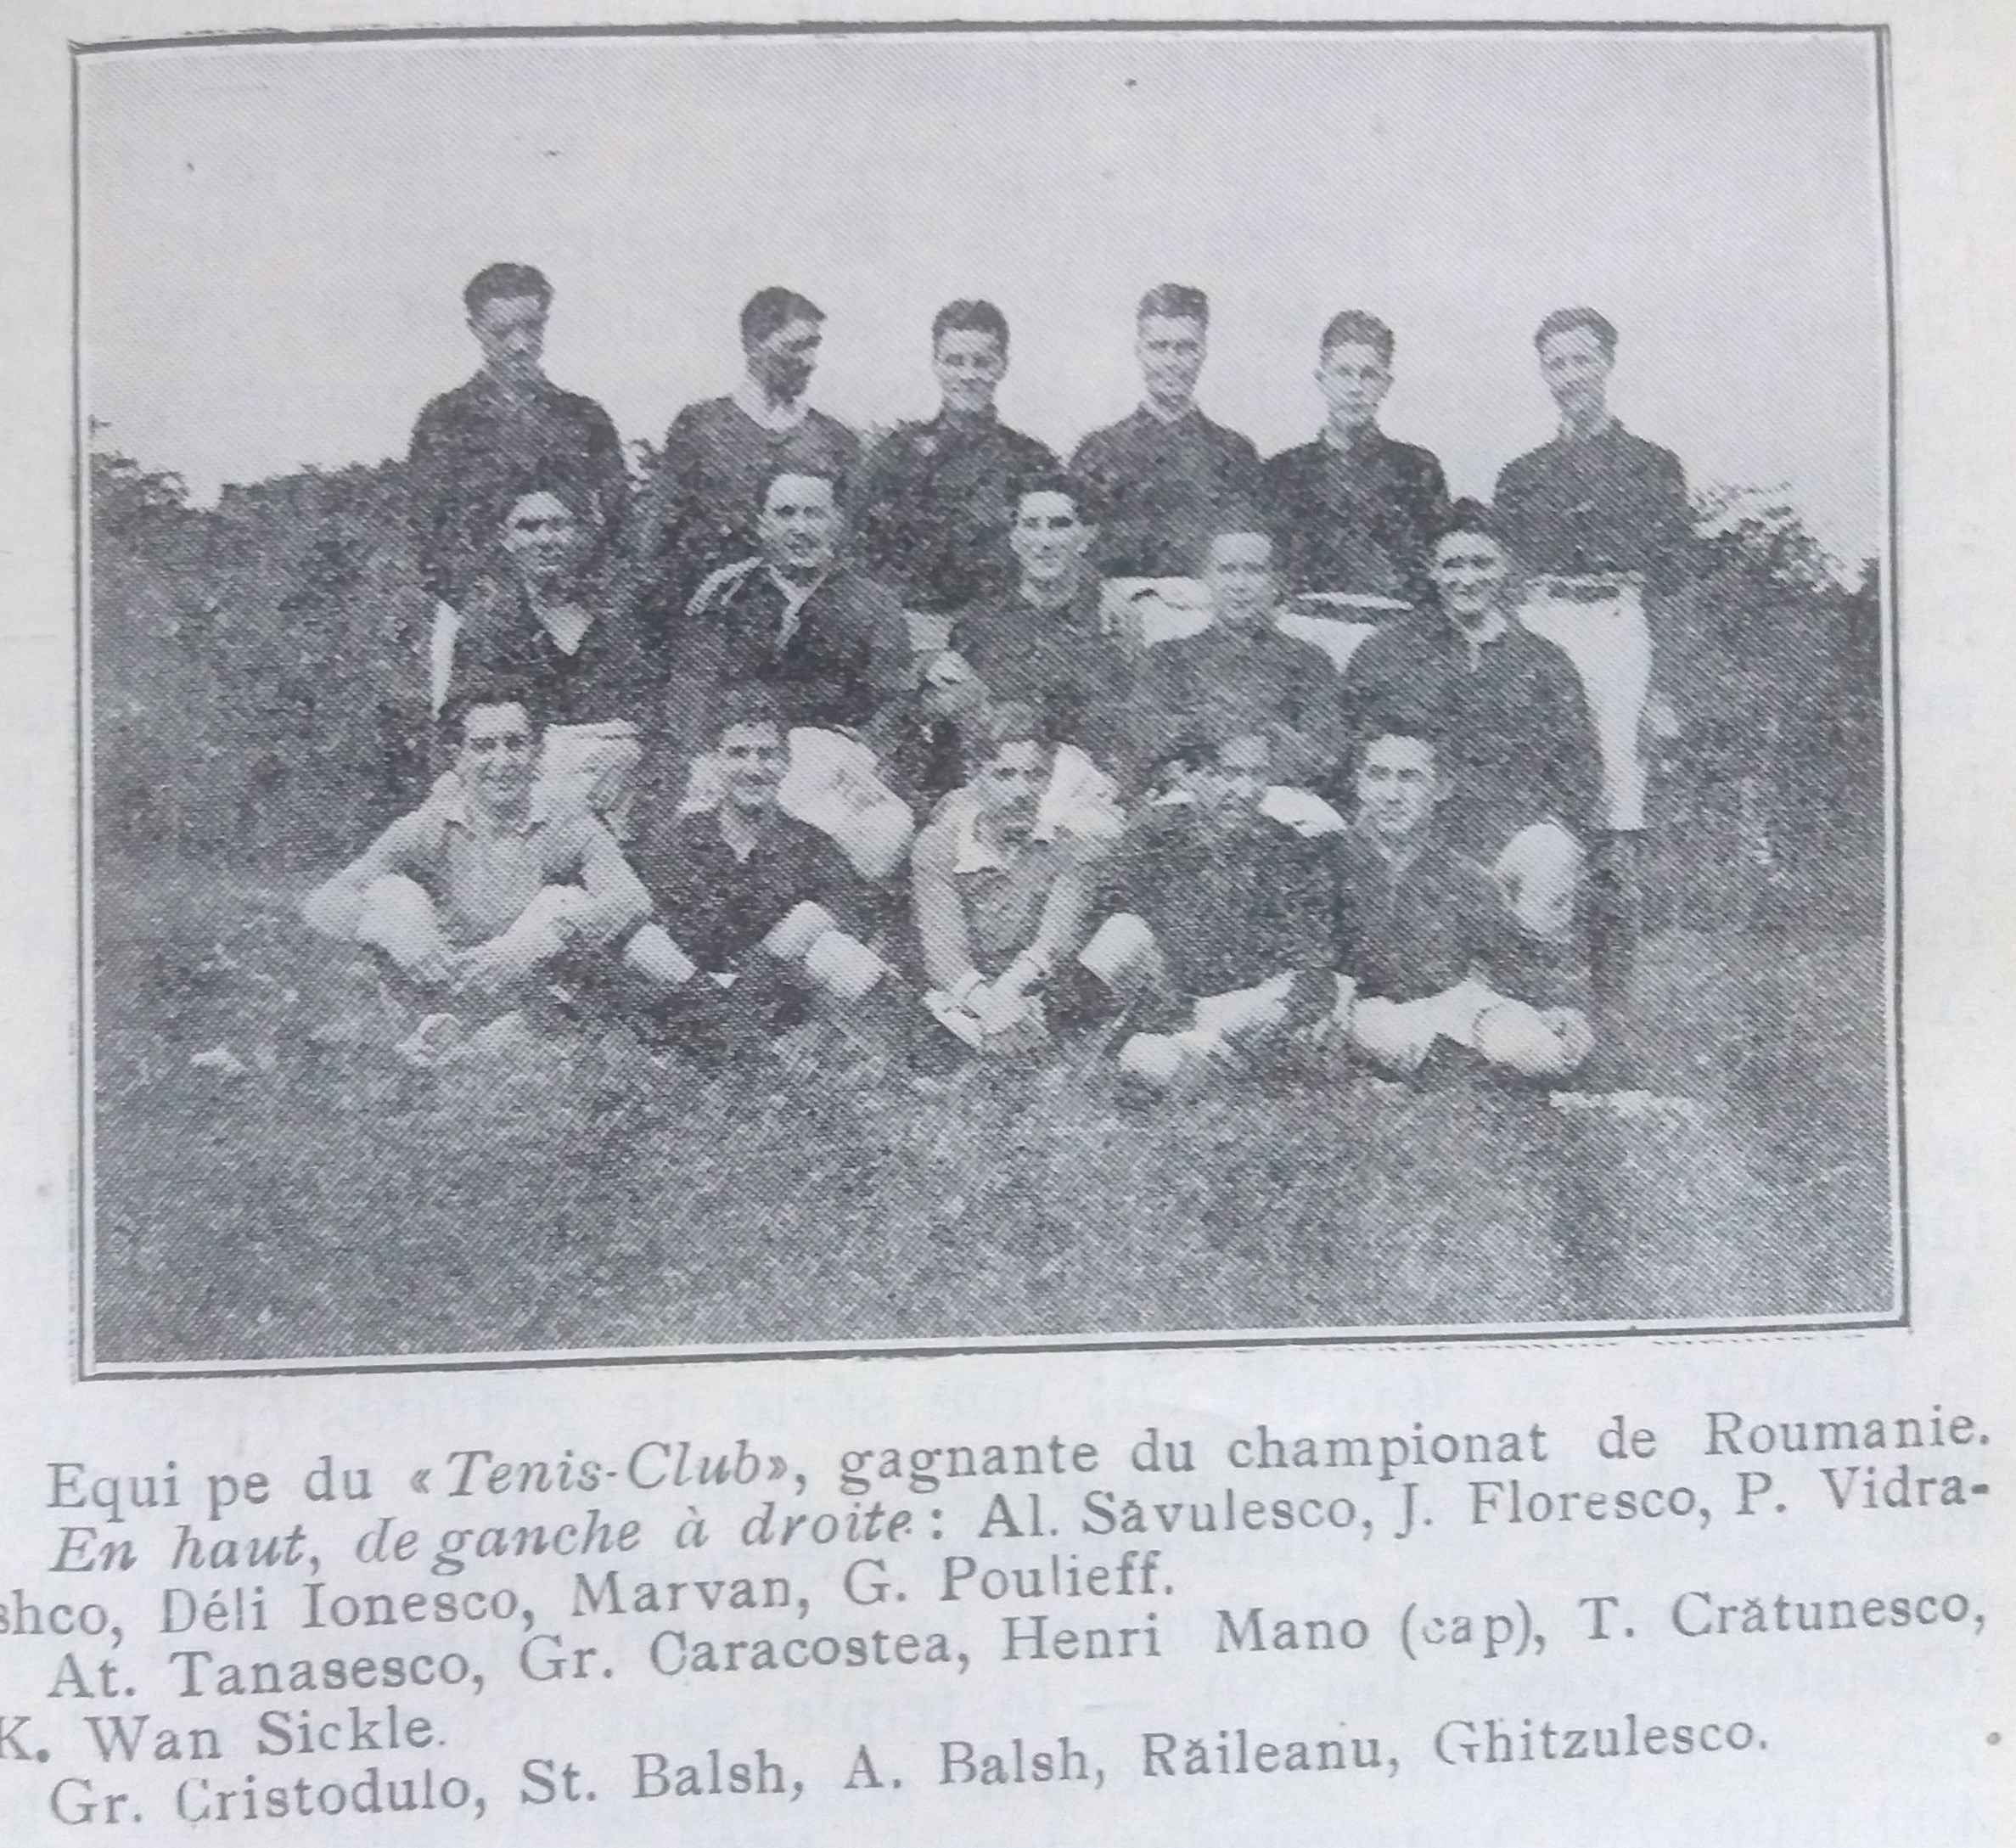 Tennis-Club, Nationalmeister 1923 - mit französierten Namen (Quelle: Almanach du High-Life 1923)